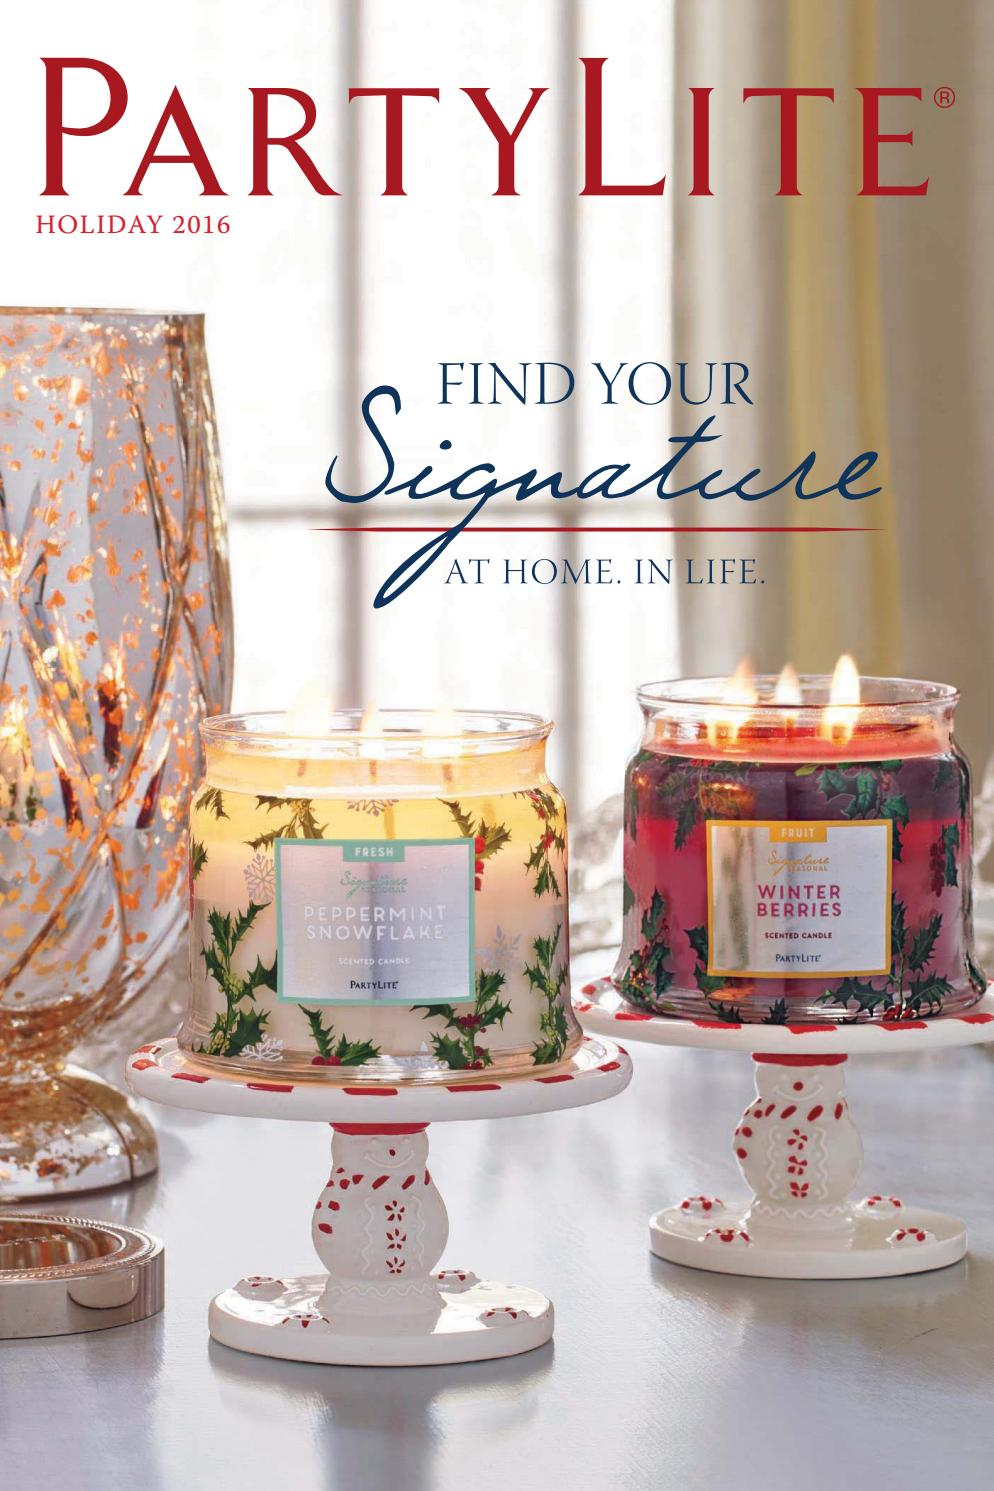 Holiday! Partylite Iced Snowberries Festive Fruits Jar Candle